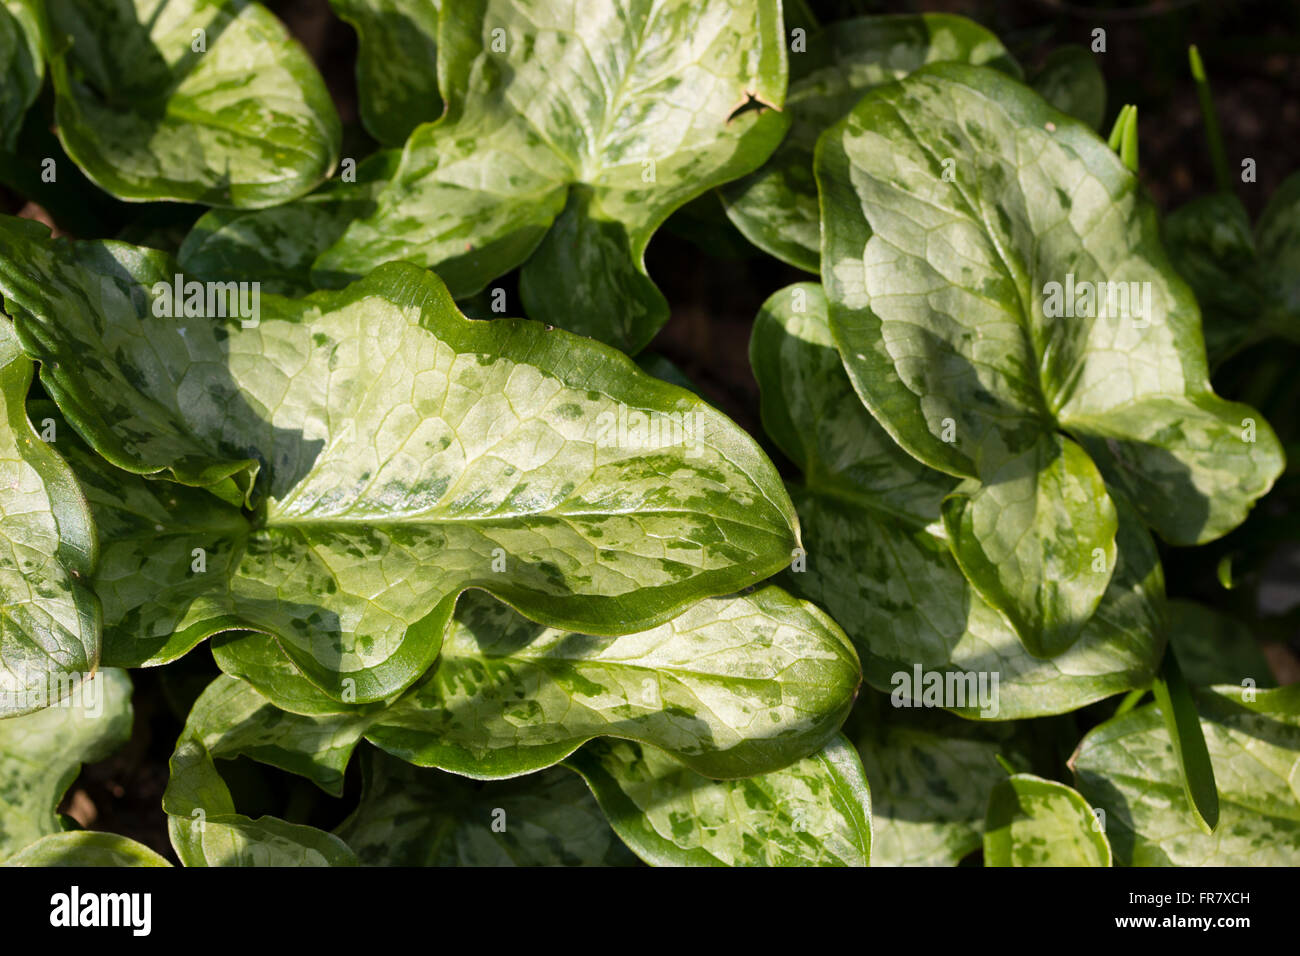 Marbled foliage of the winter and spring foliaged corm, Arum italicum 'Chameleon' - Stock Image